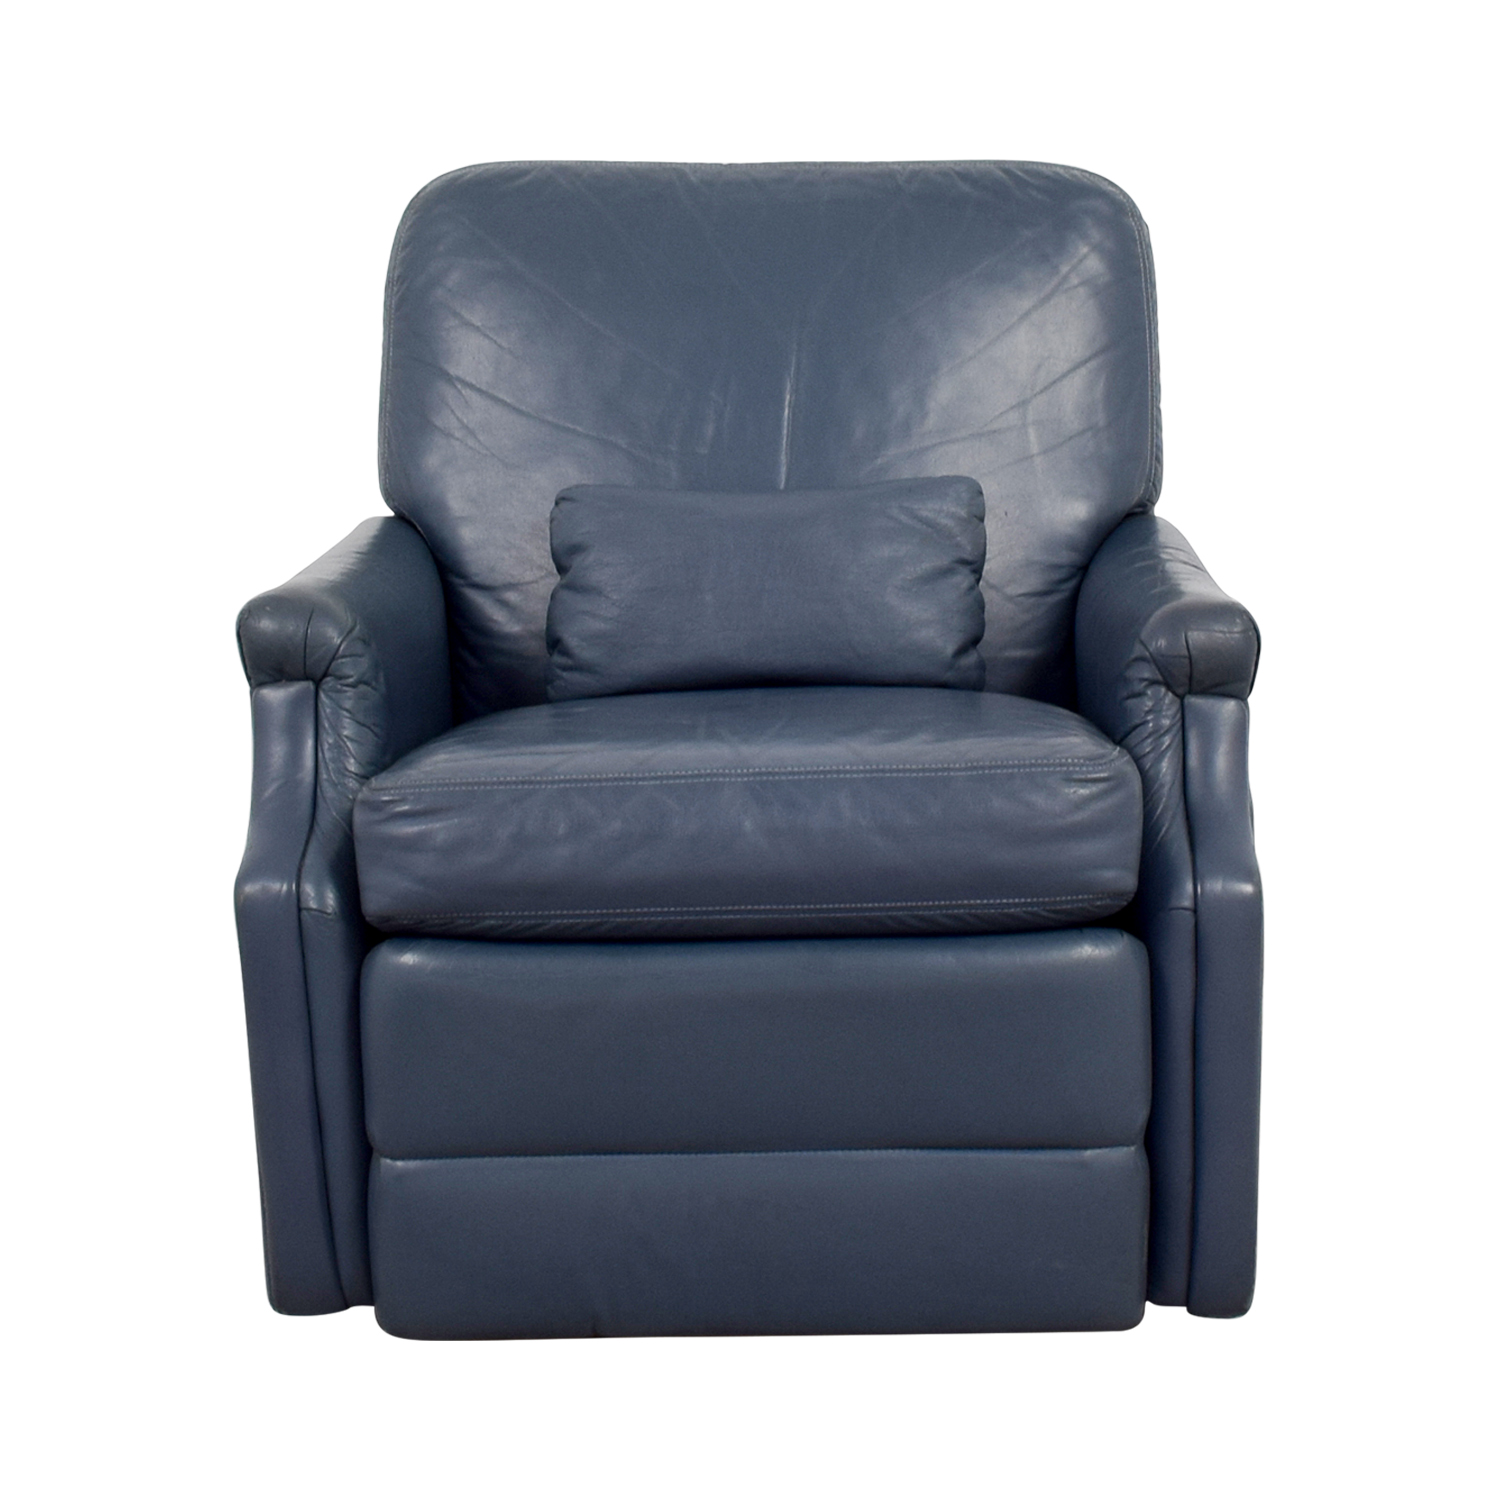 used recliner chairs french velvet chair recliners for sale